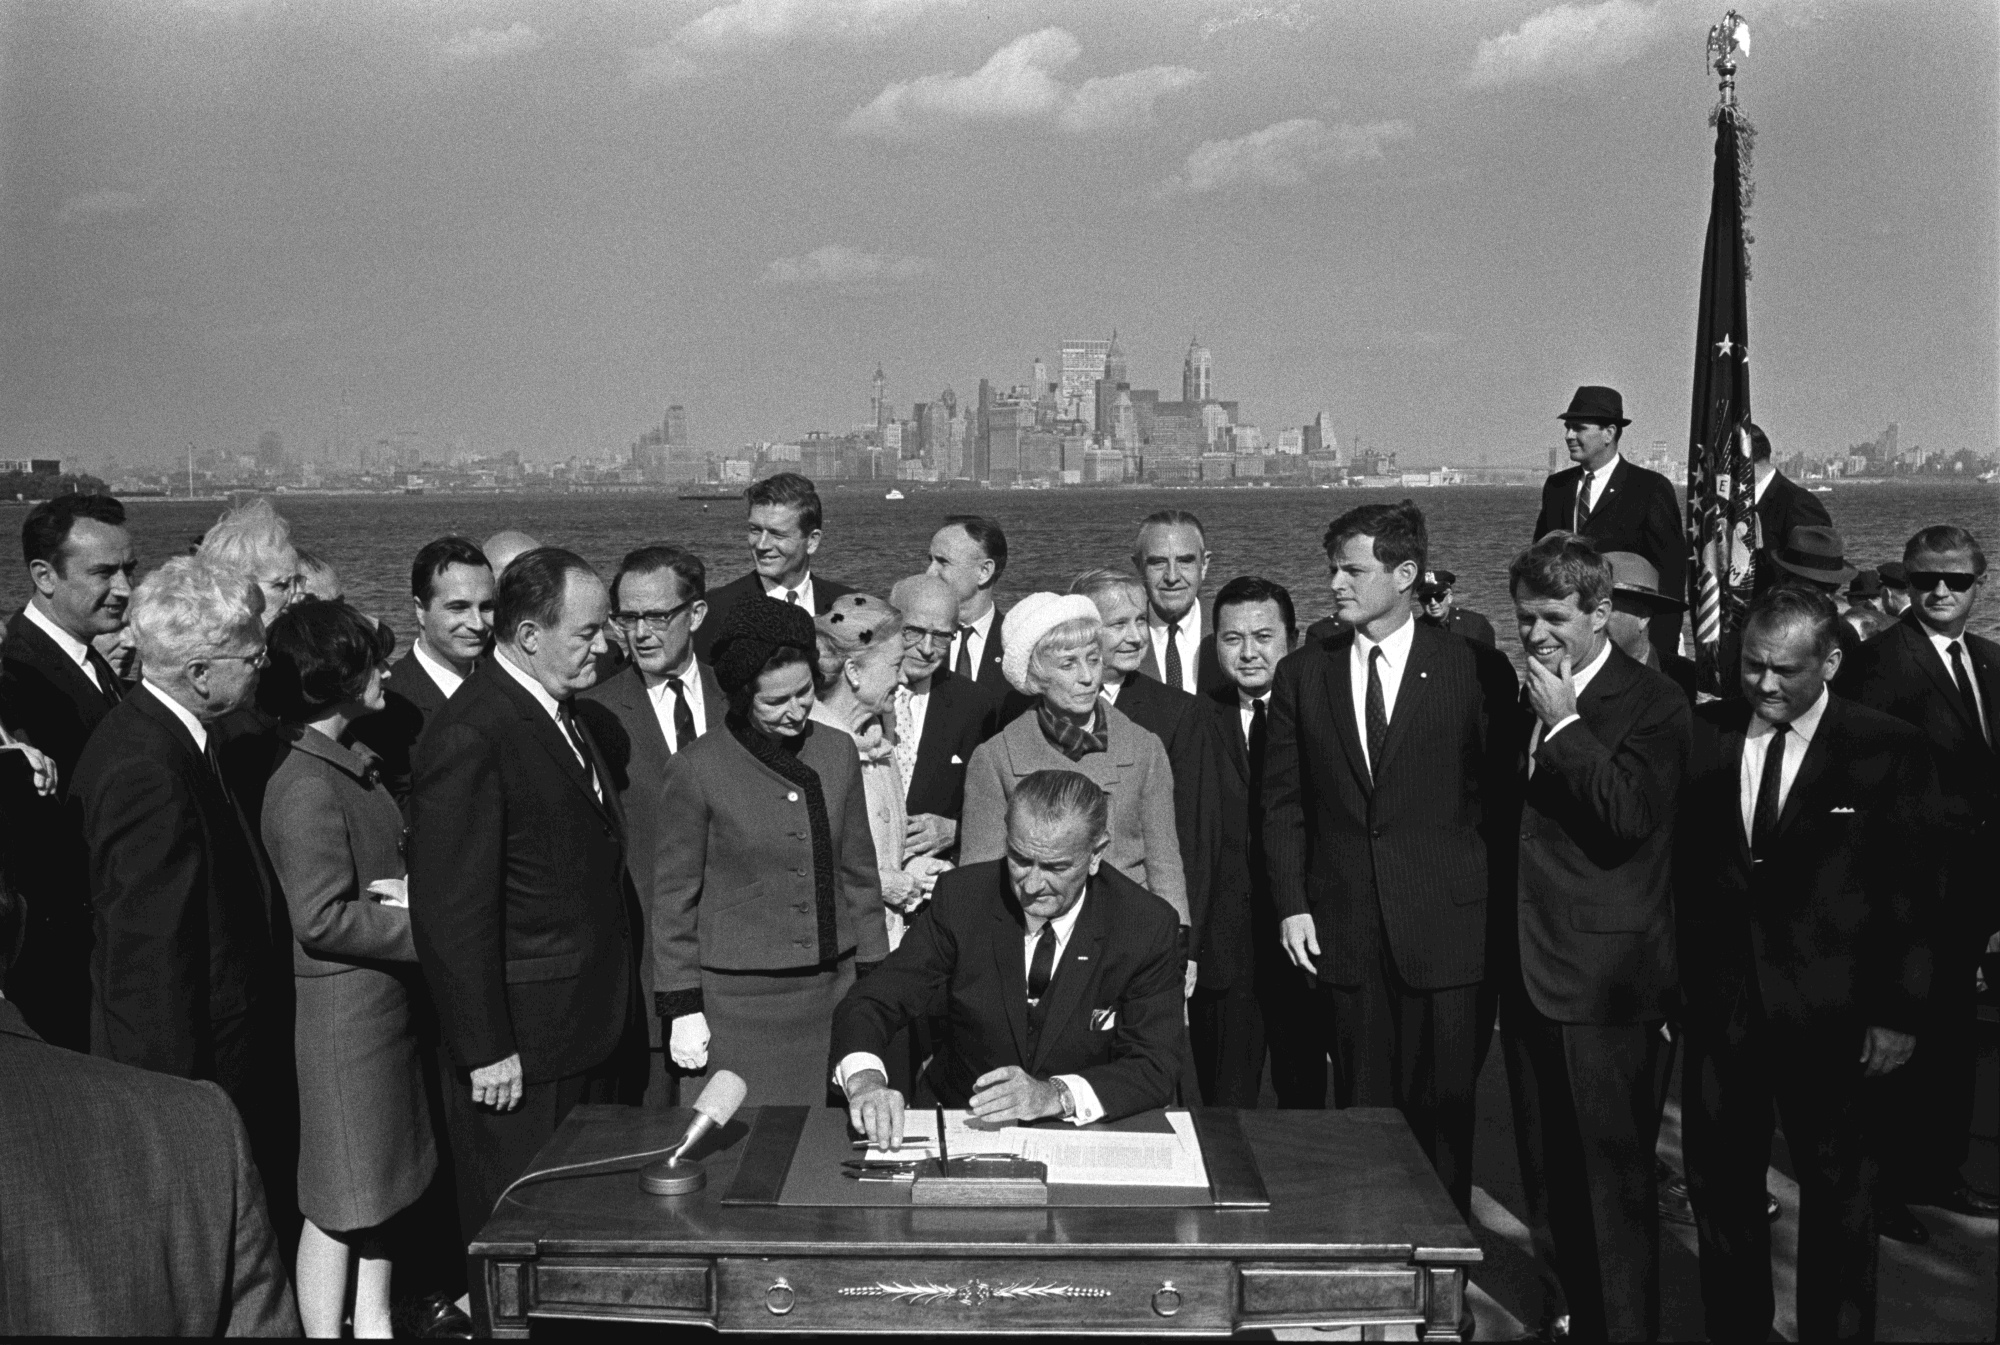 President Lyndon B. Johnson signed The Immigration and Nationality Act on October 2, 1965 -